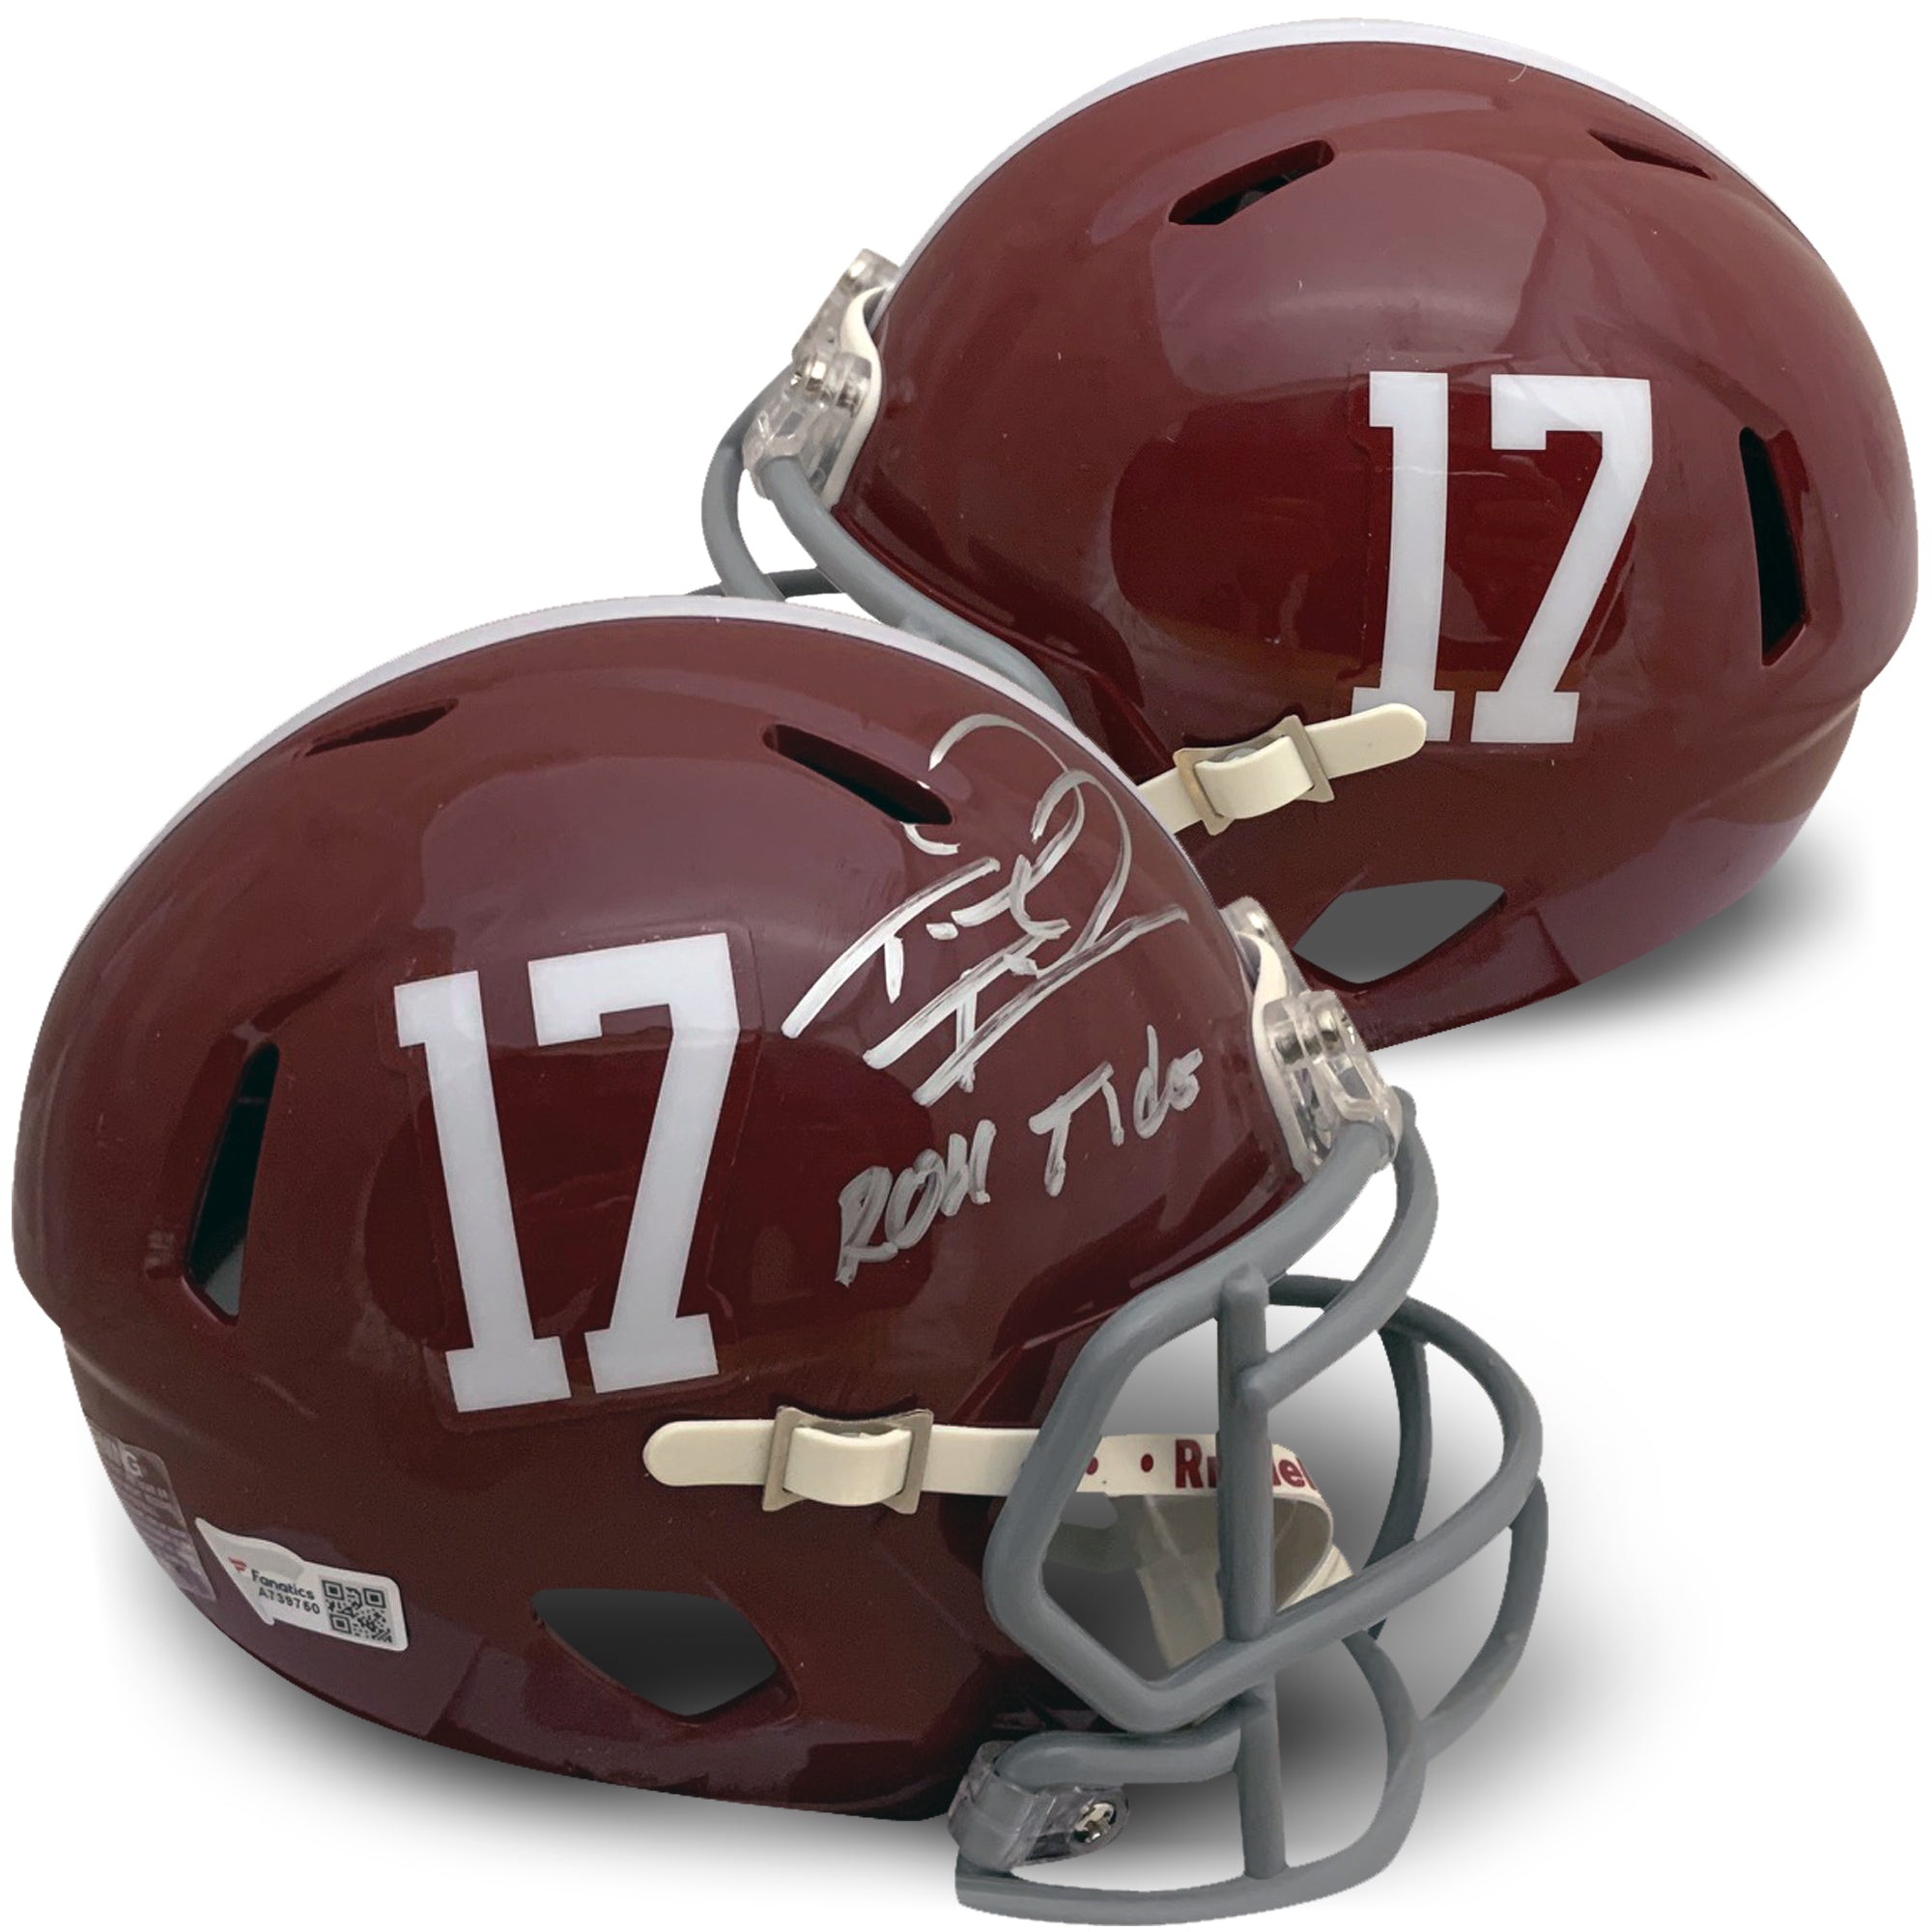 Tua Tagovailoa Autographed Alabama Crimson Tide Signed Football ROLL TIDE Mini Helmet Fanatics Authentic COA-Powers Sports Memorabilia